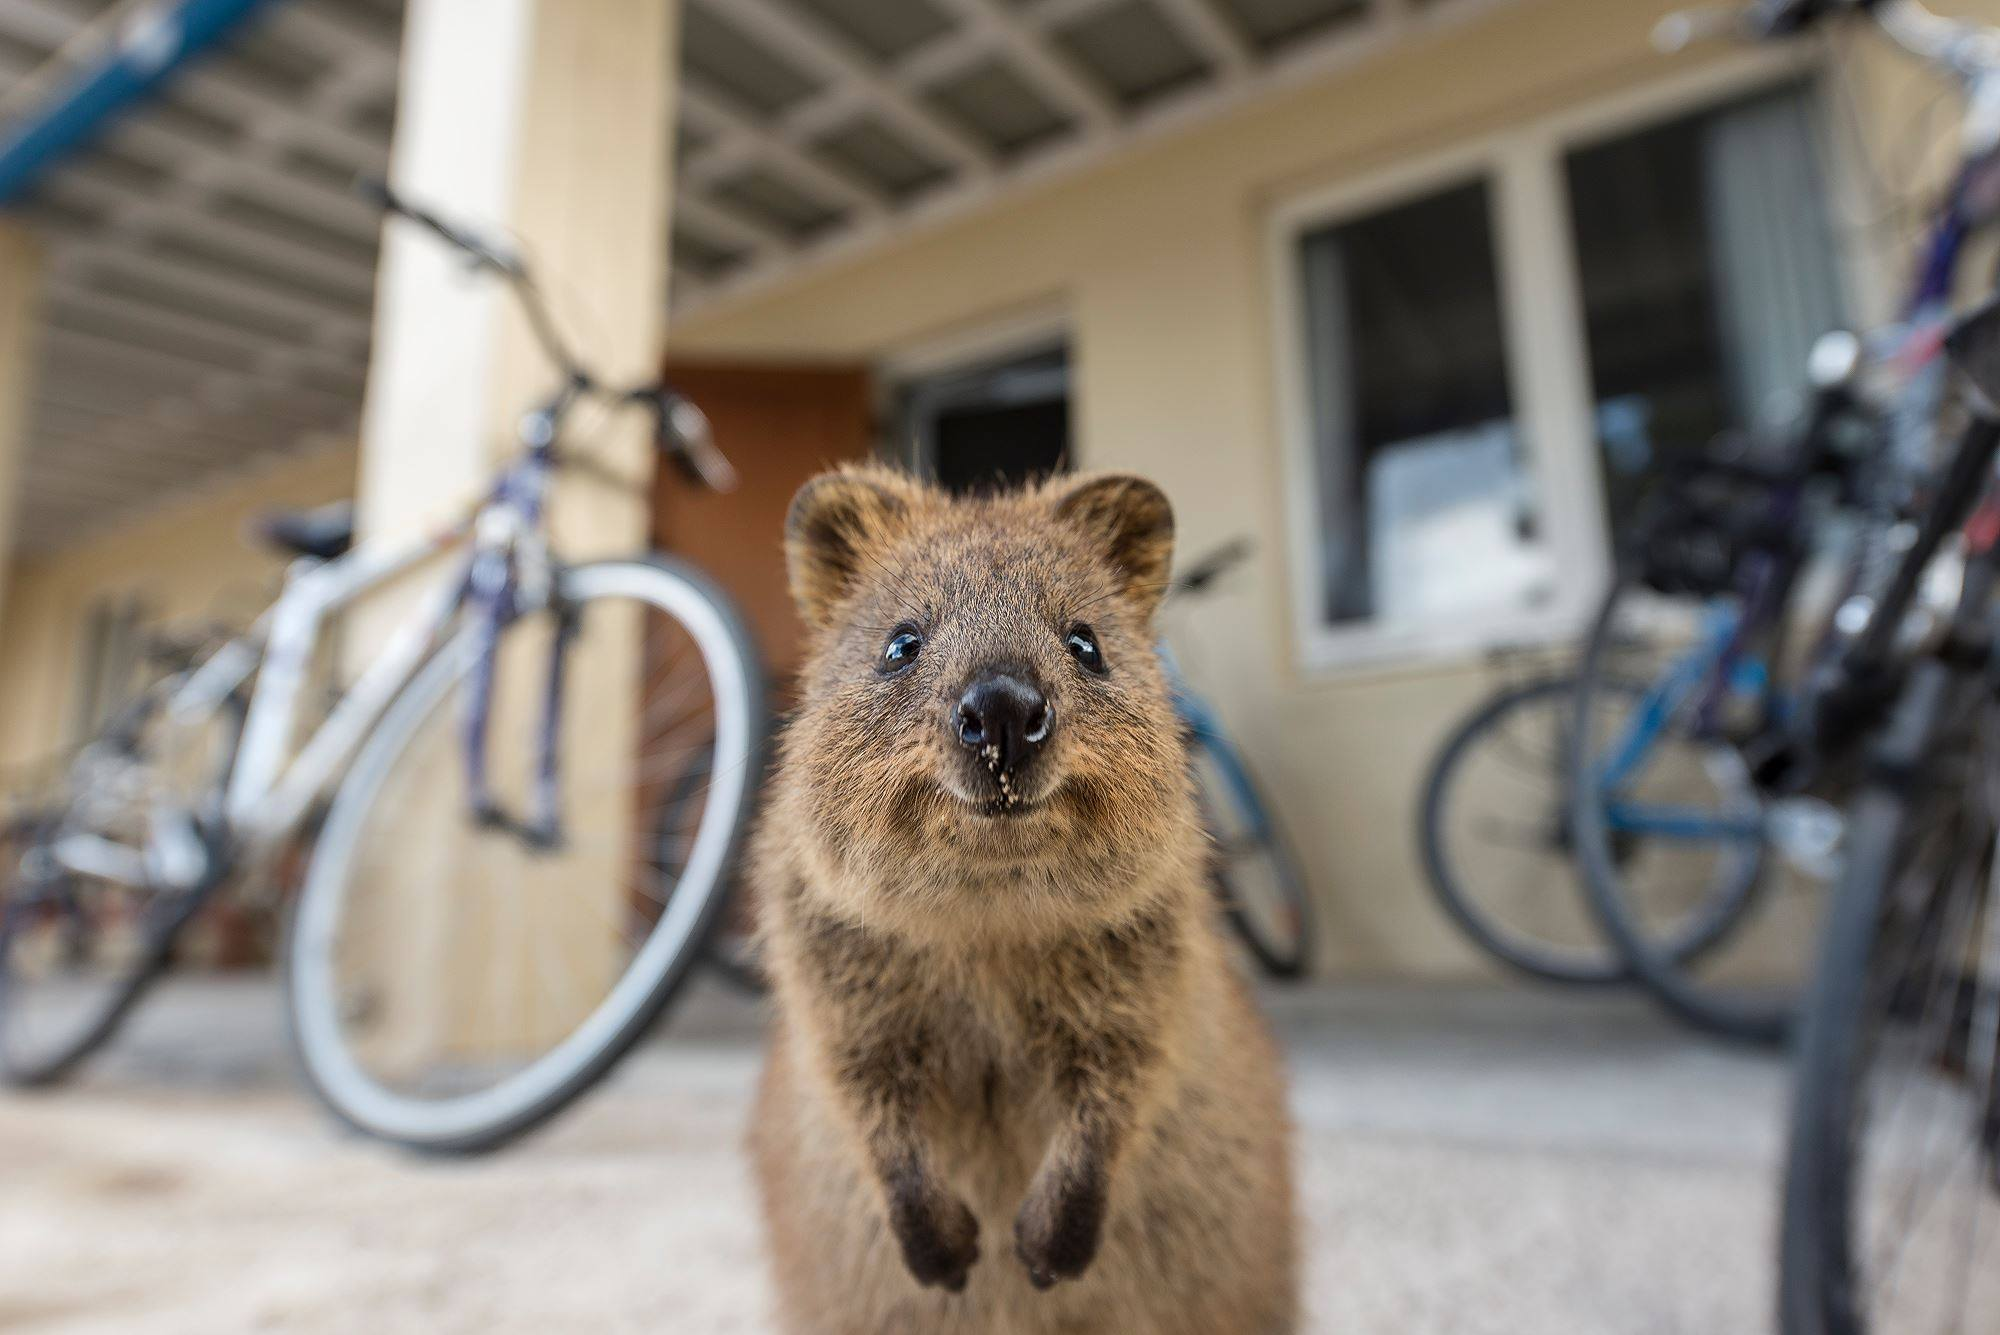 Quokka HD Wallpapers | 7wallpapers.net